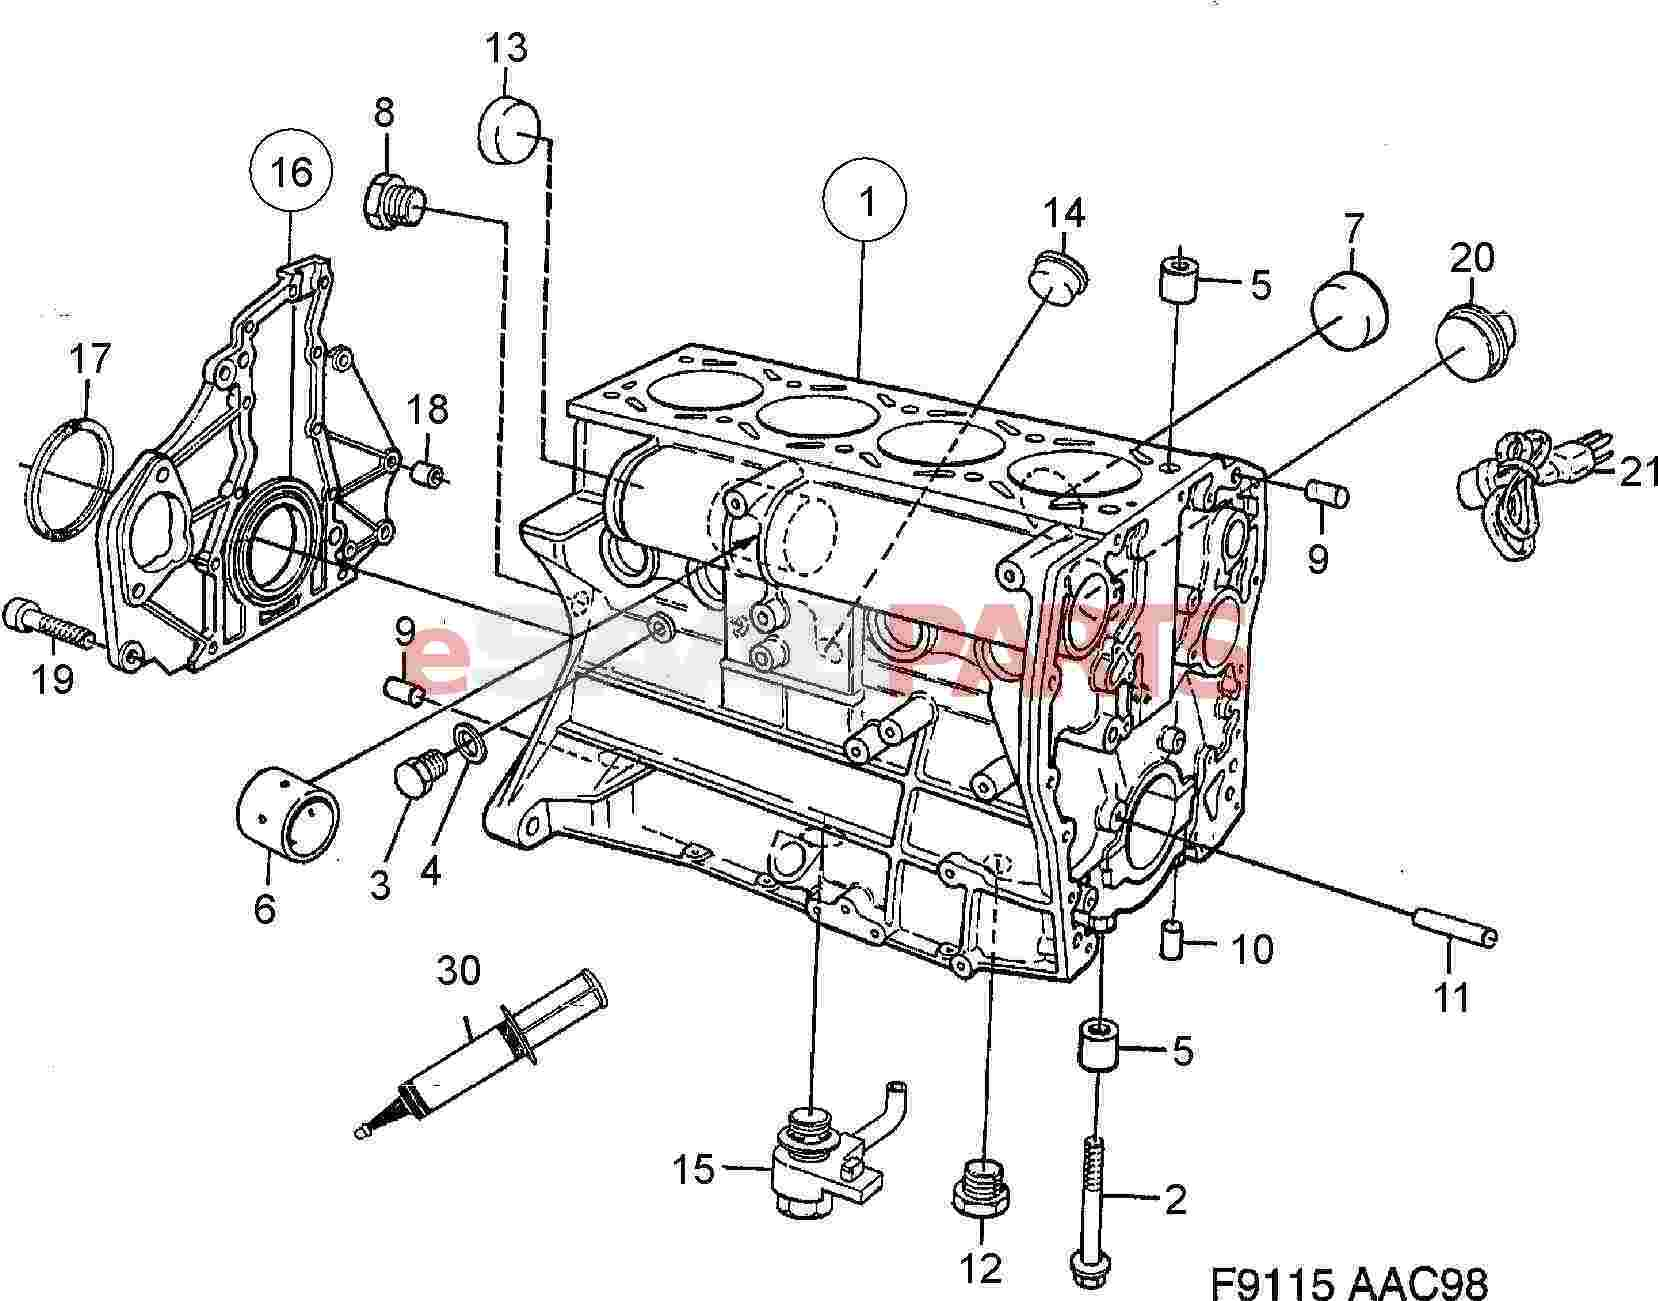 saab 9 3 engine diagram blank skeletal 7985120 sealing washer genuine parts from